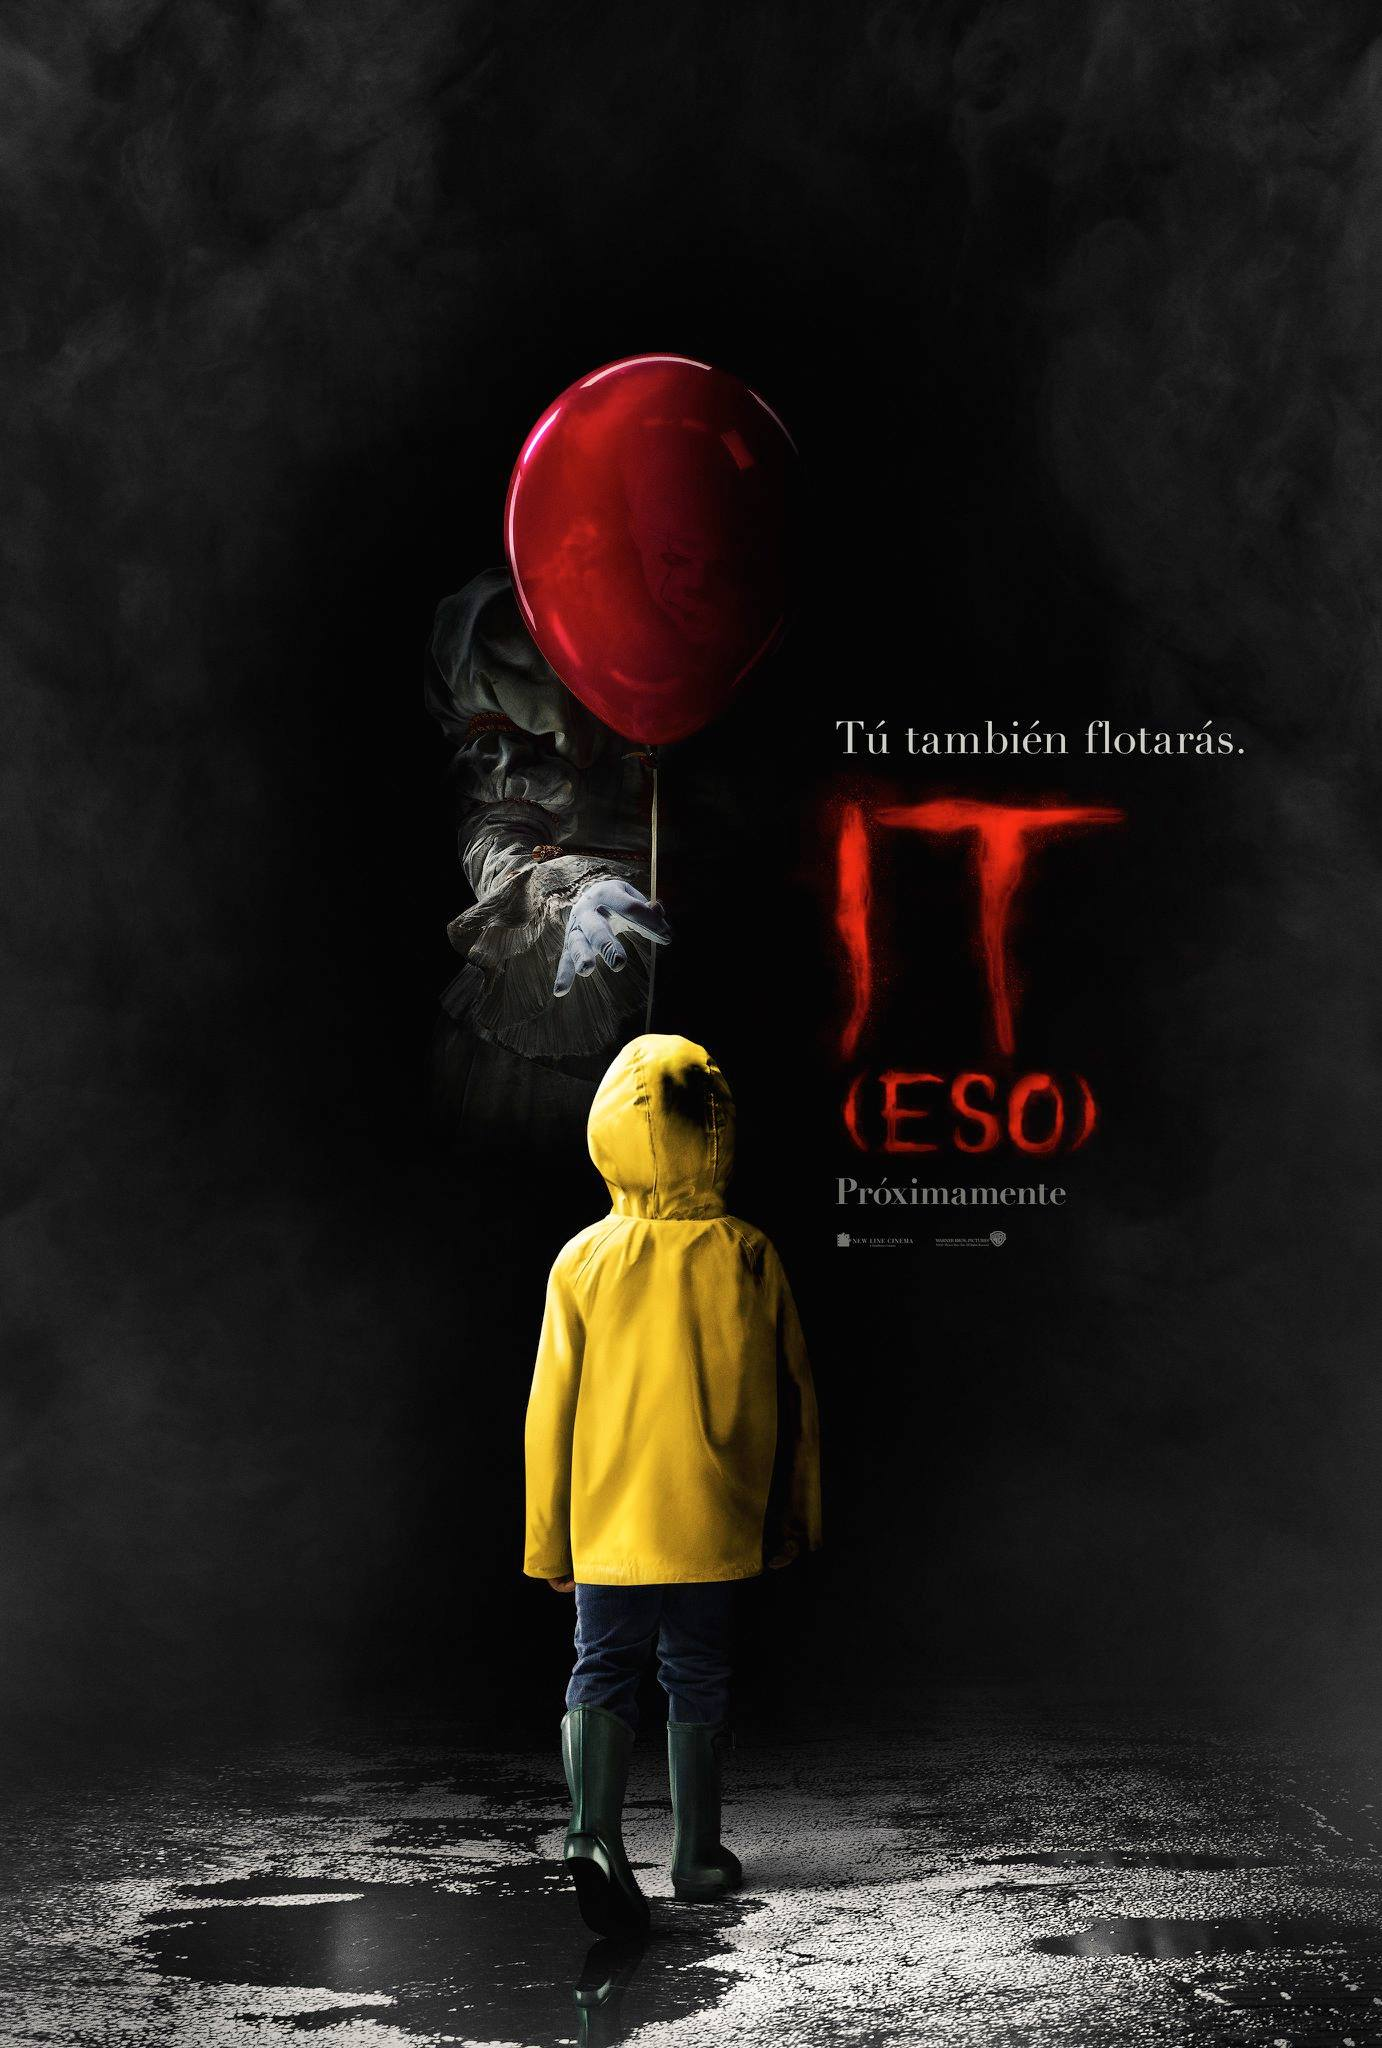 It_Eso_Teaser_Poster_Latino_JPosters